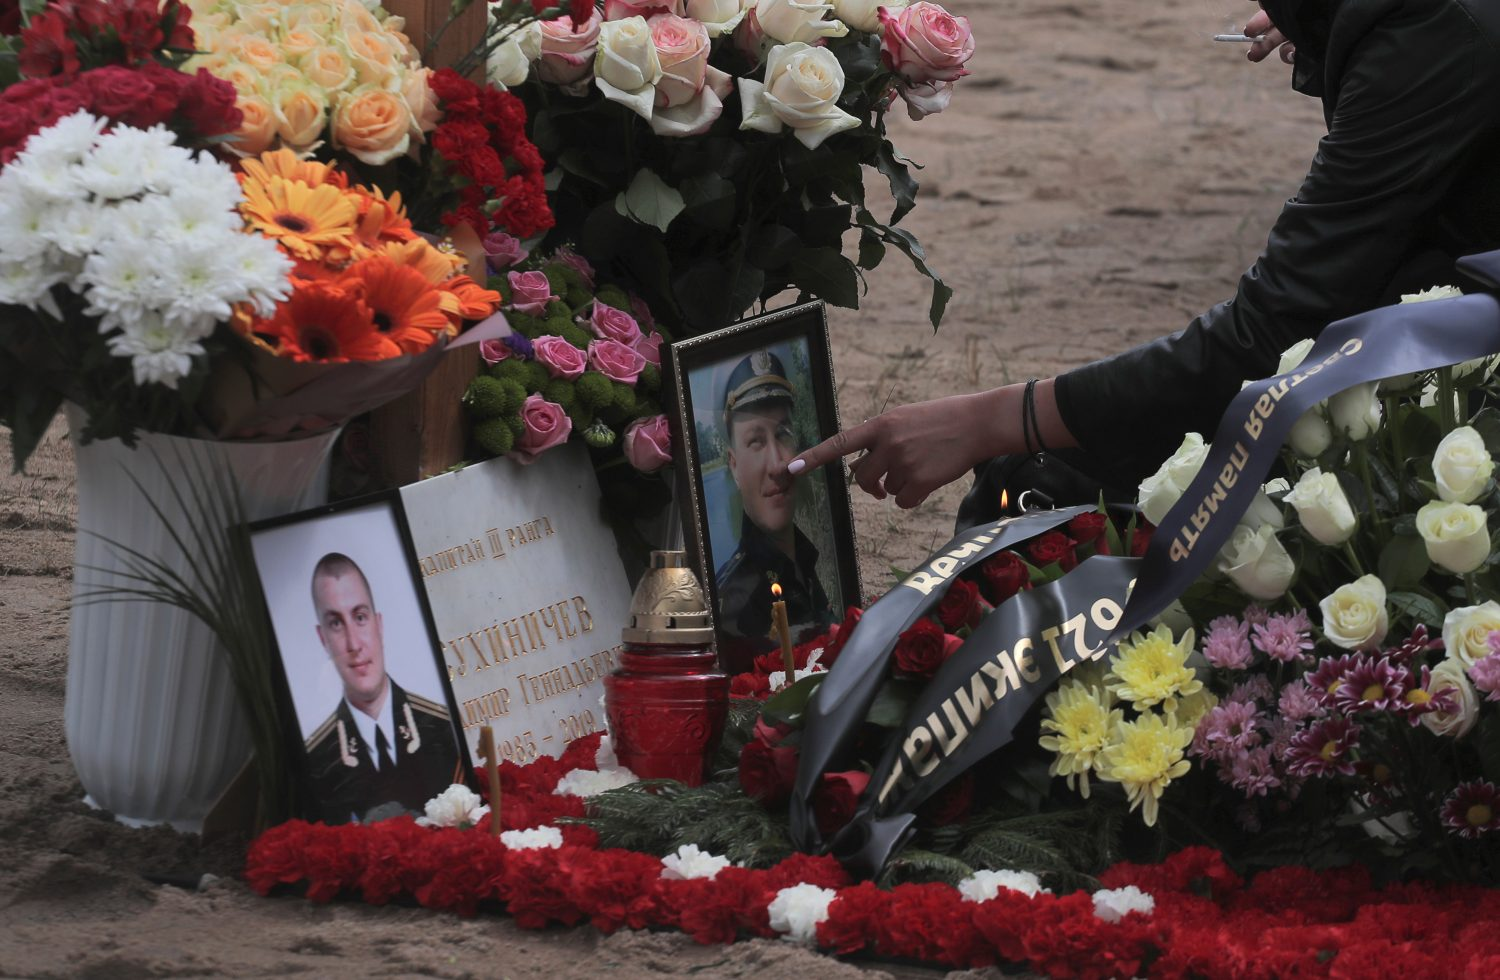 A mourner touches a photograph at the grave of Captain third rank Vladimir Sukhinichev during the funeral of Russian sailors, who were recently killed in a fire on a secret nuclear research submarine in the area of the Barents Sea, at Serafimovskoye cemetery in Saint Petersburg, Russia July 6, 2019. REUTERS/Anton Vaganov